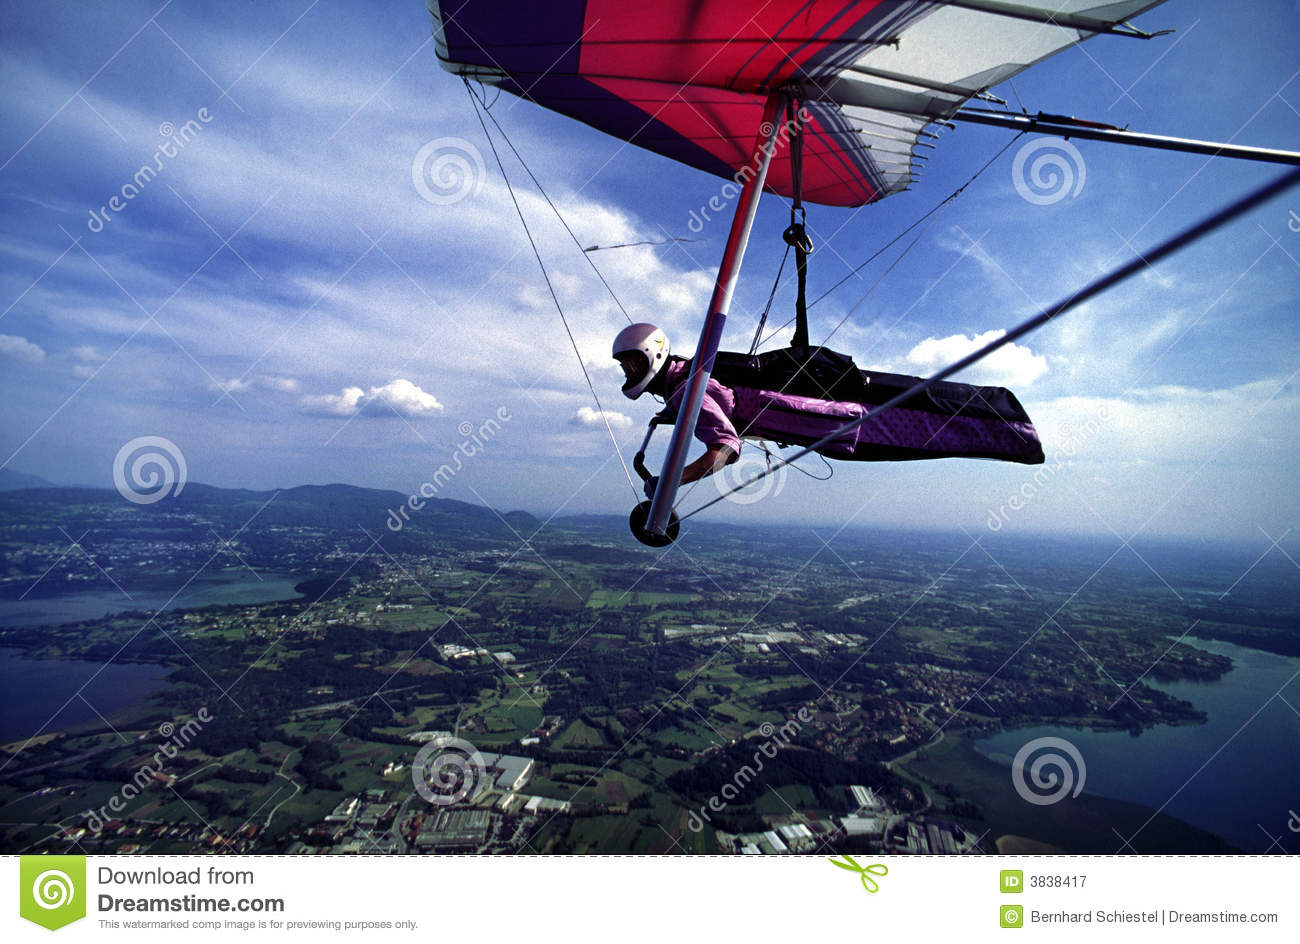 1 norr hanggliding italy